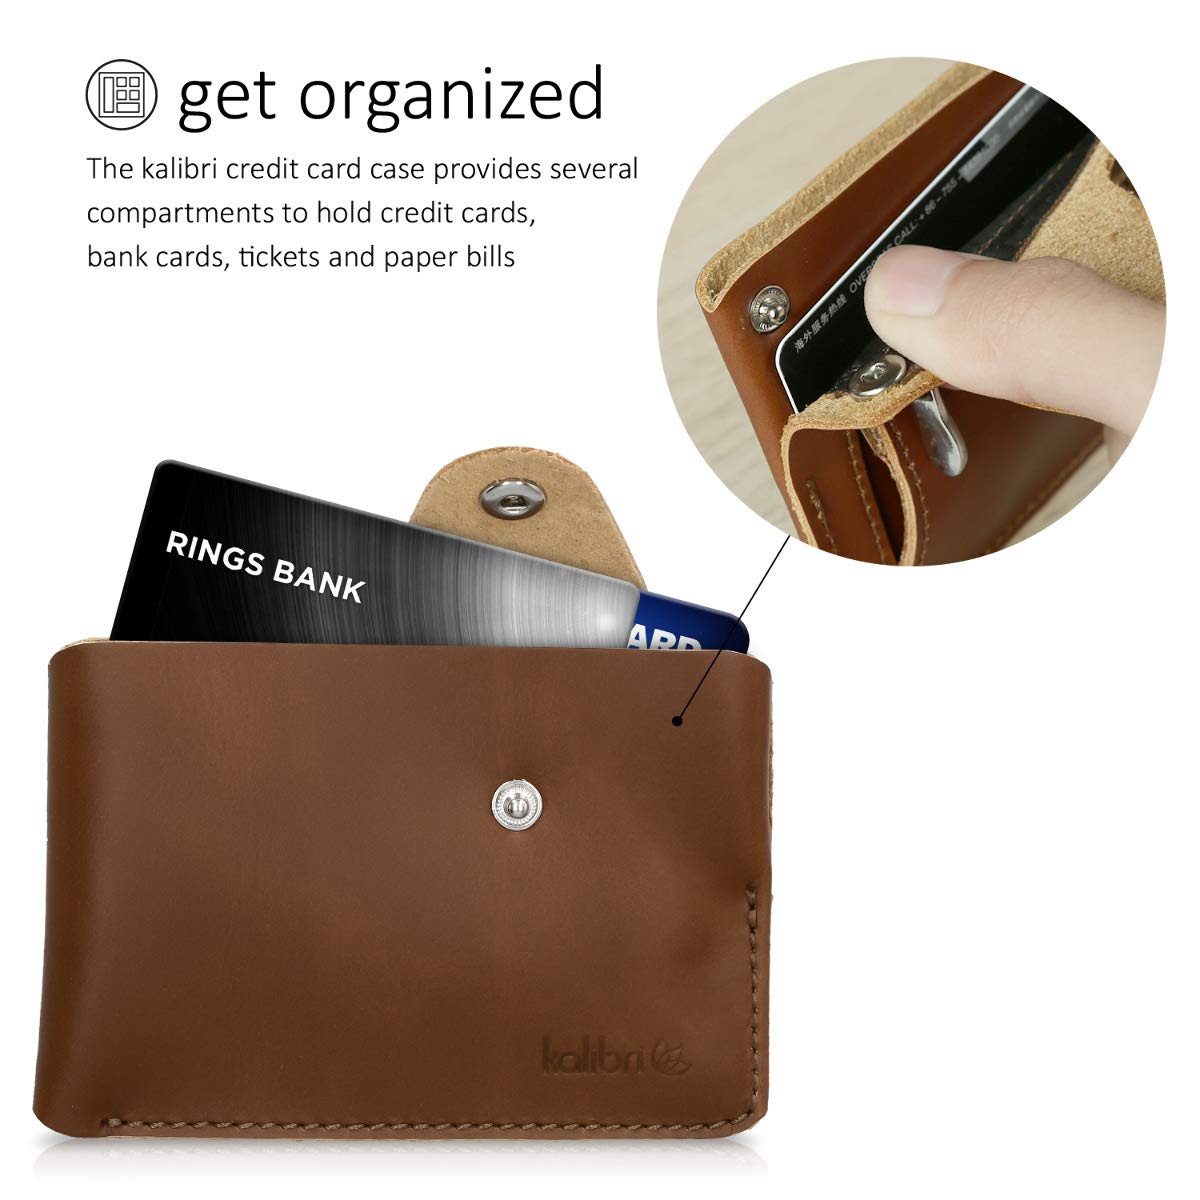 kalibri Leather Business Card Holder Real Leather Wallet Case for Business Cards Credit Cards Holds up to 60 Cards Black Bank Cards and More